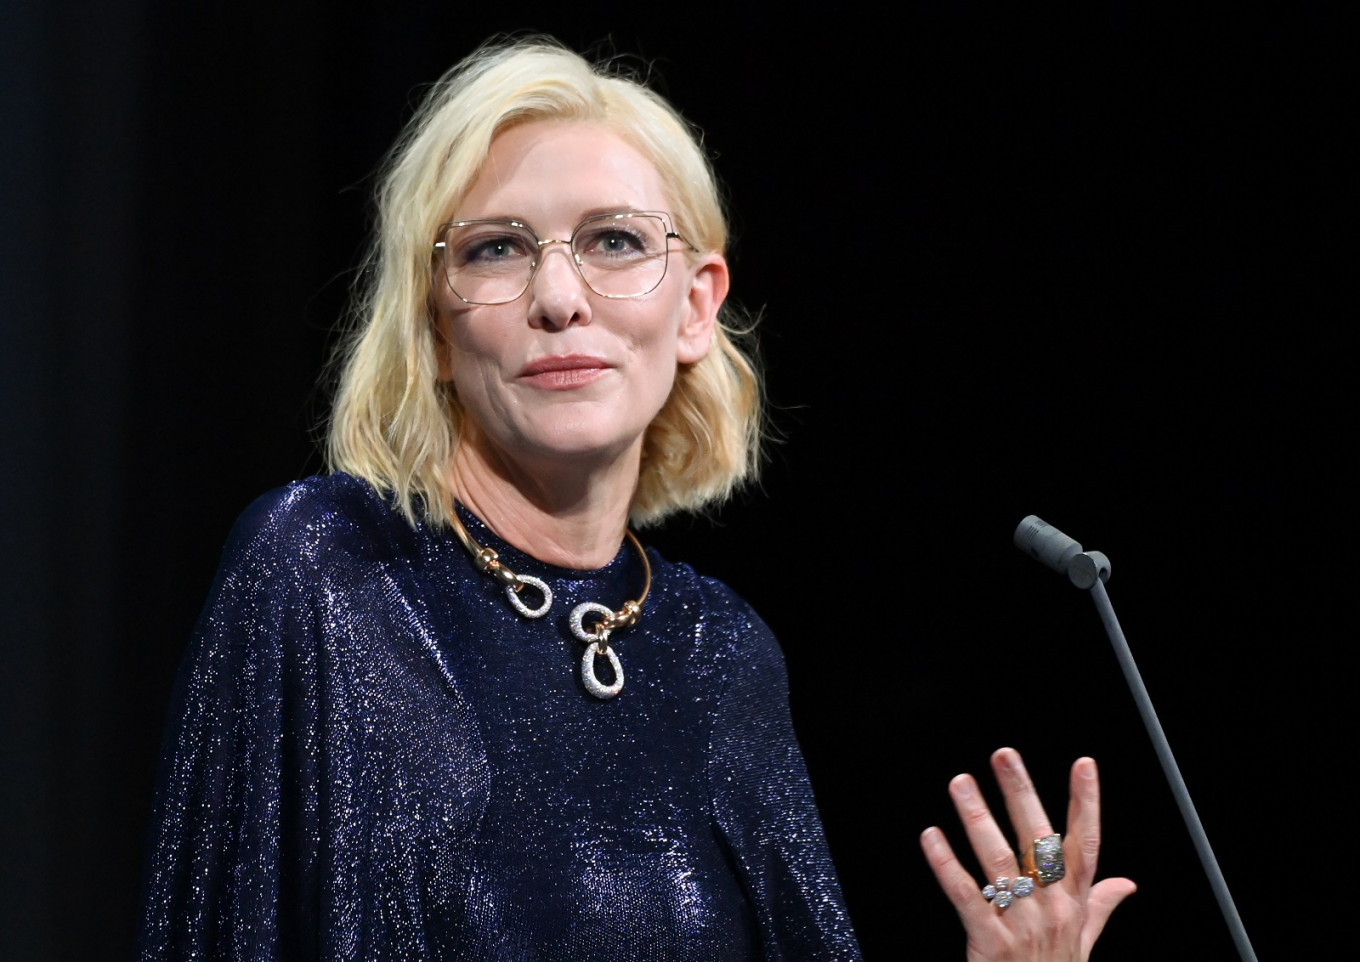 Don T Call Me An Actress Says Cate Blanchett Entertainment The Jakarta Post